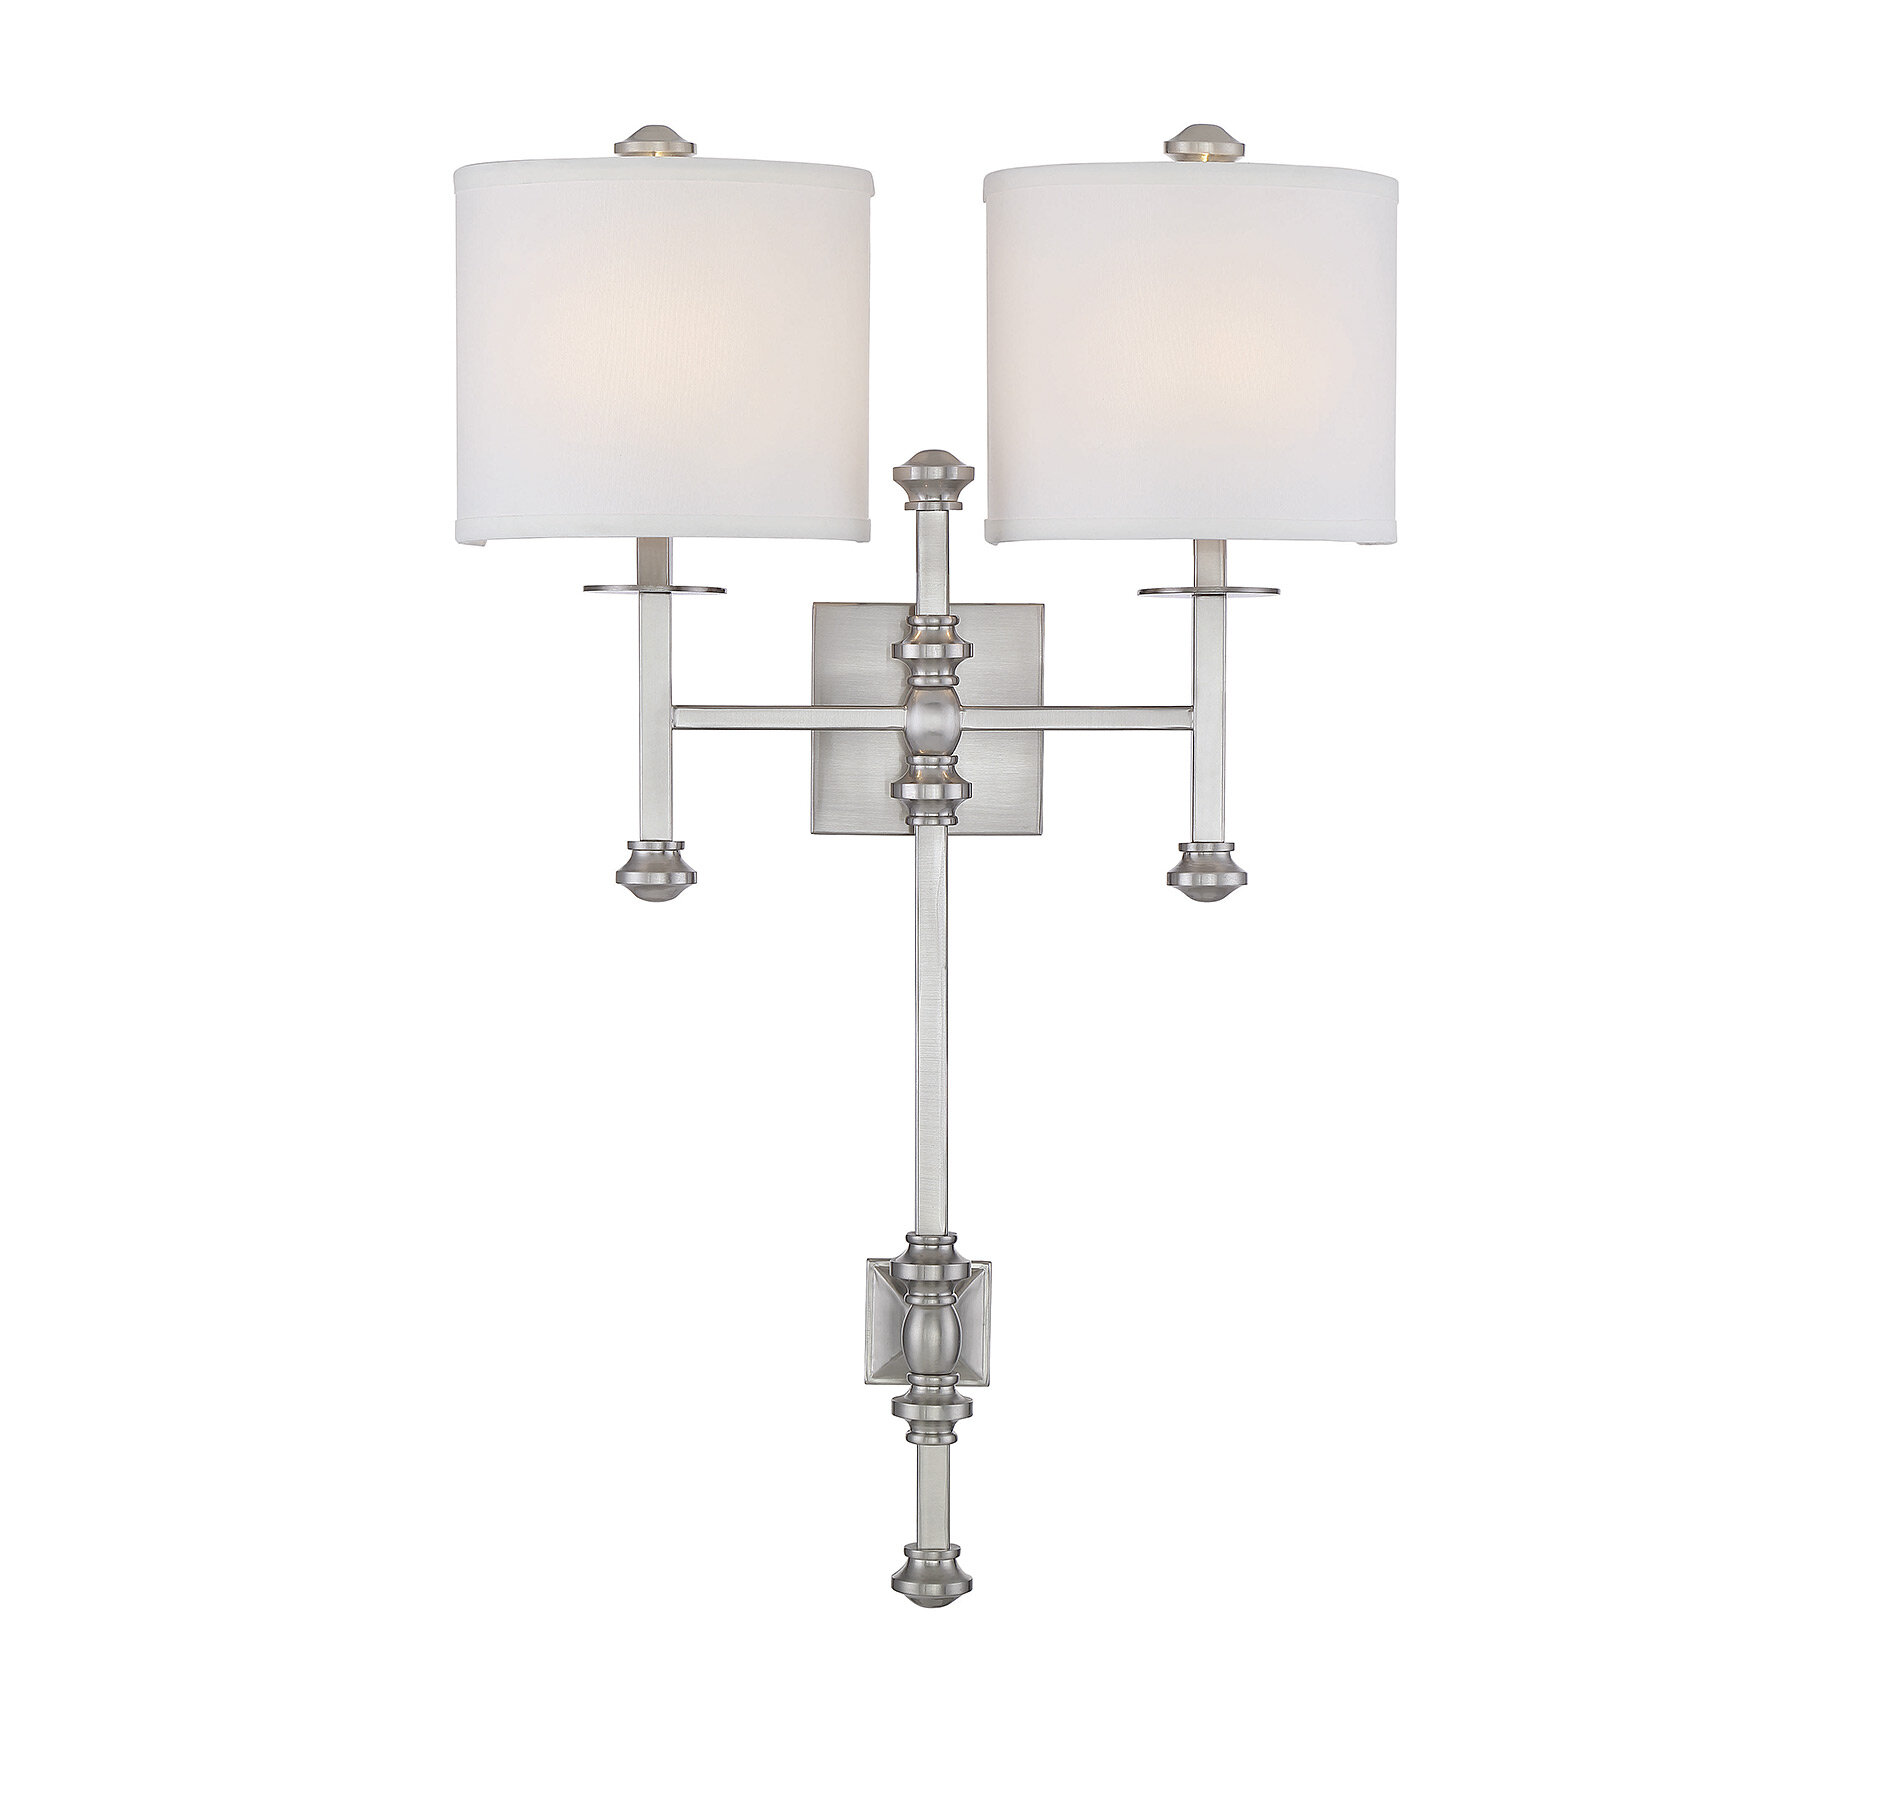 2 Wallchiere Wall Sconces You Ll Love In 2021 Wayfair